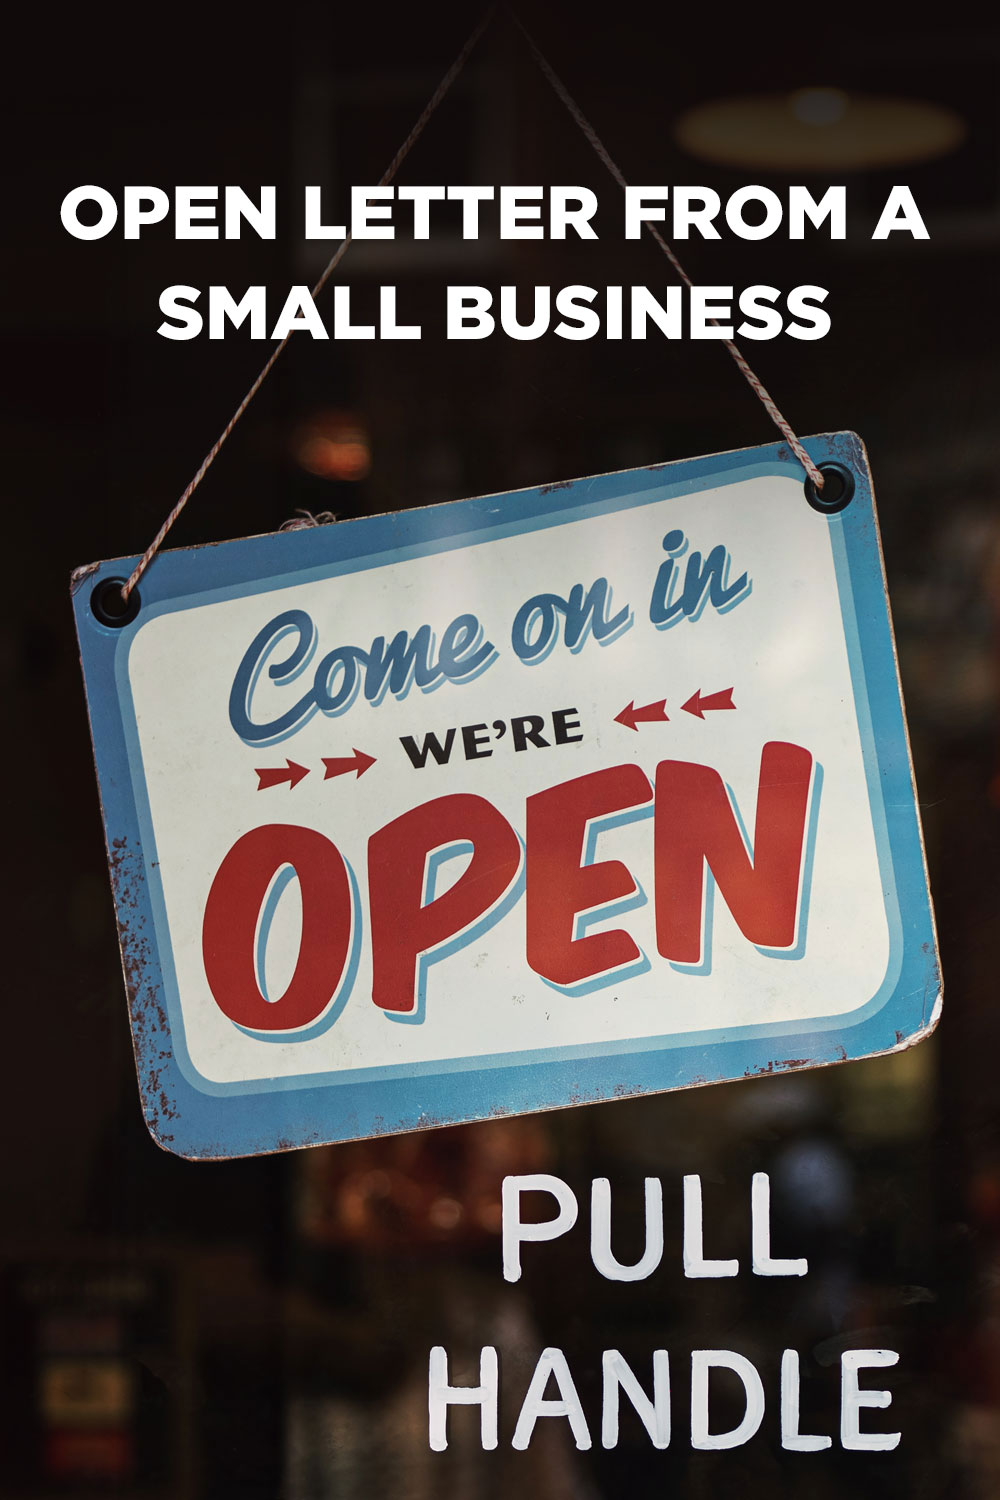 Small Business Loans for Covid-19 Crisis PPP Payroll Protection Program screwed small businesses